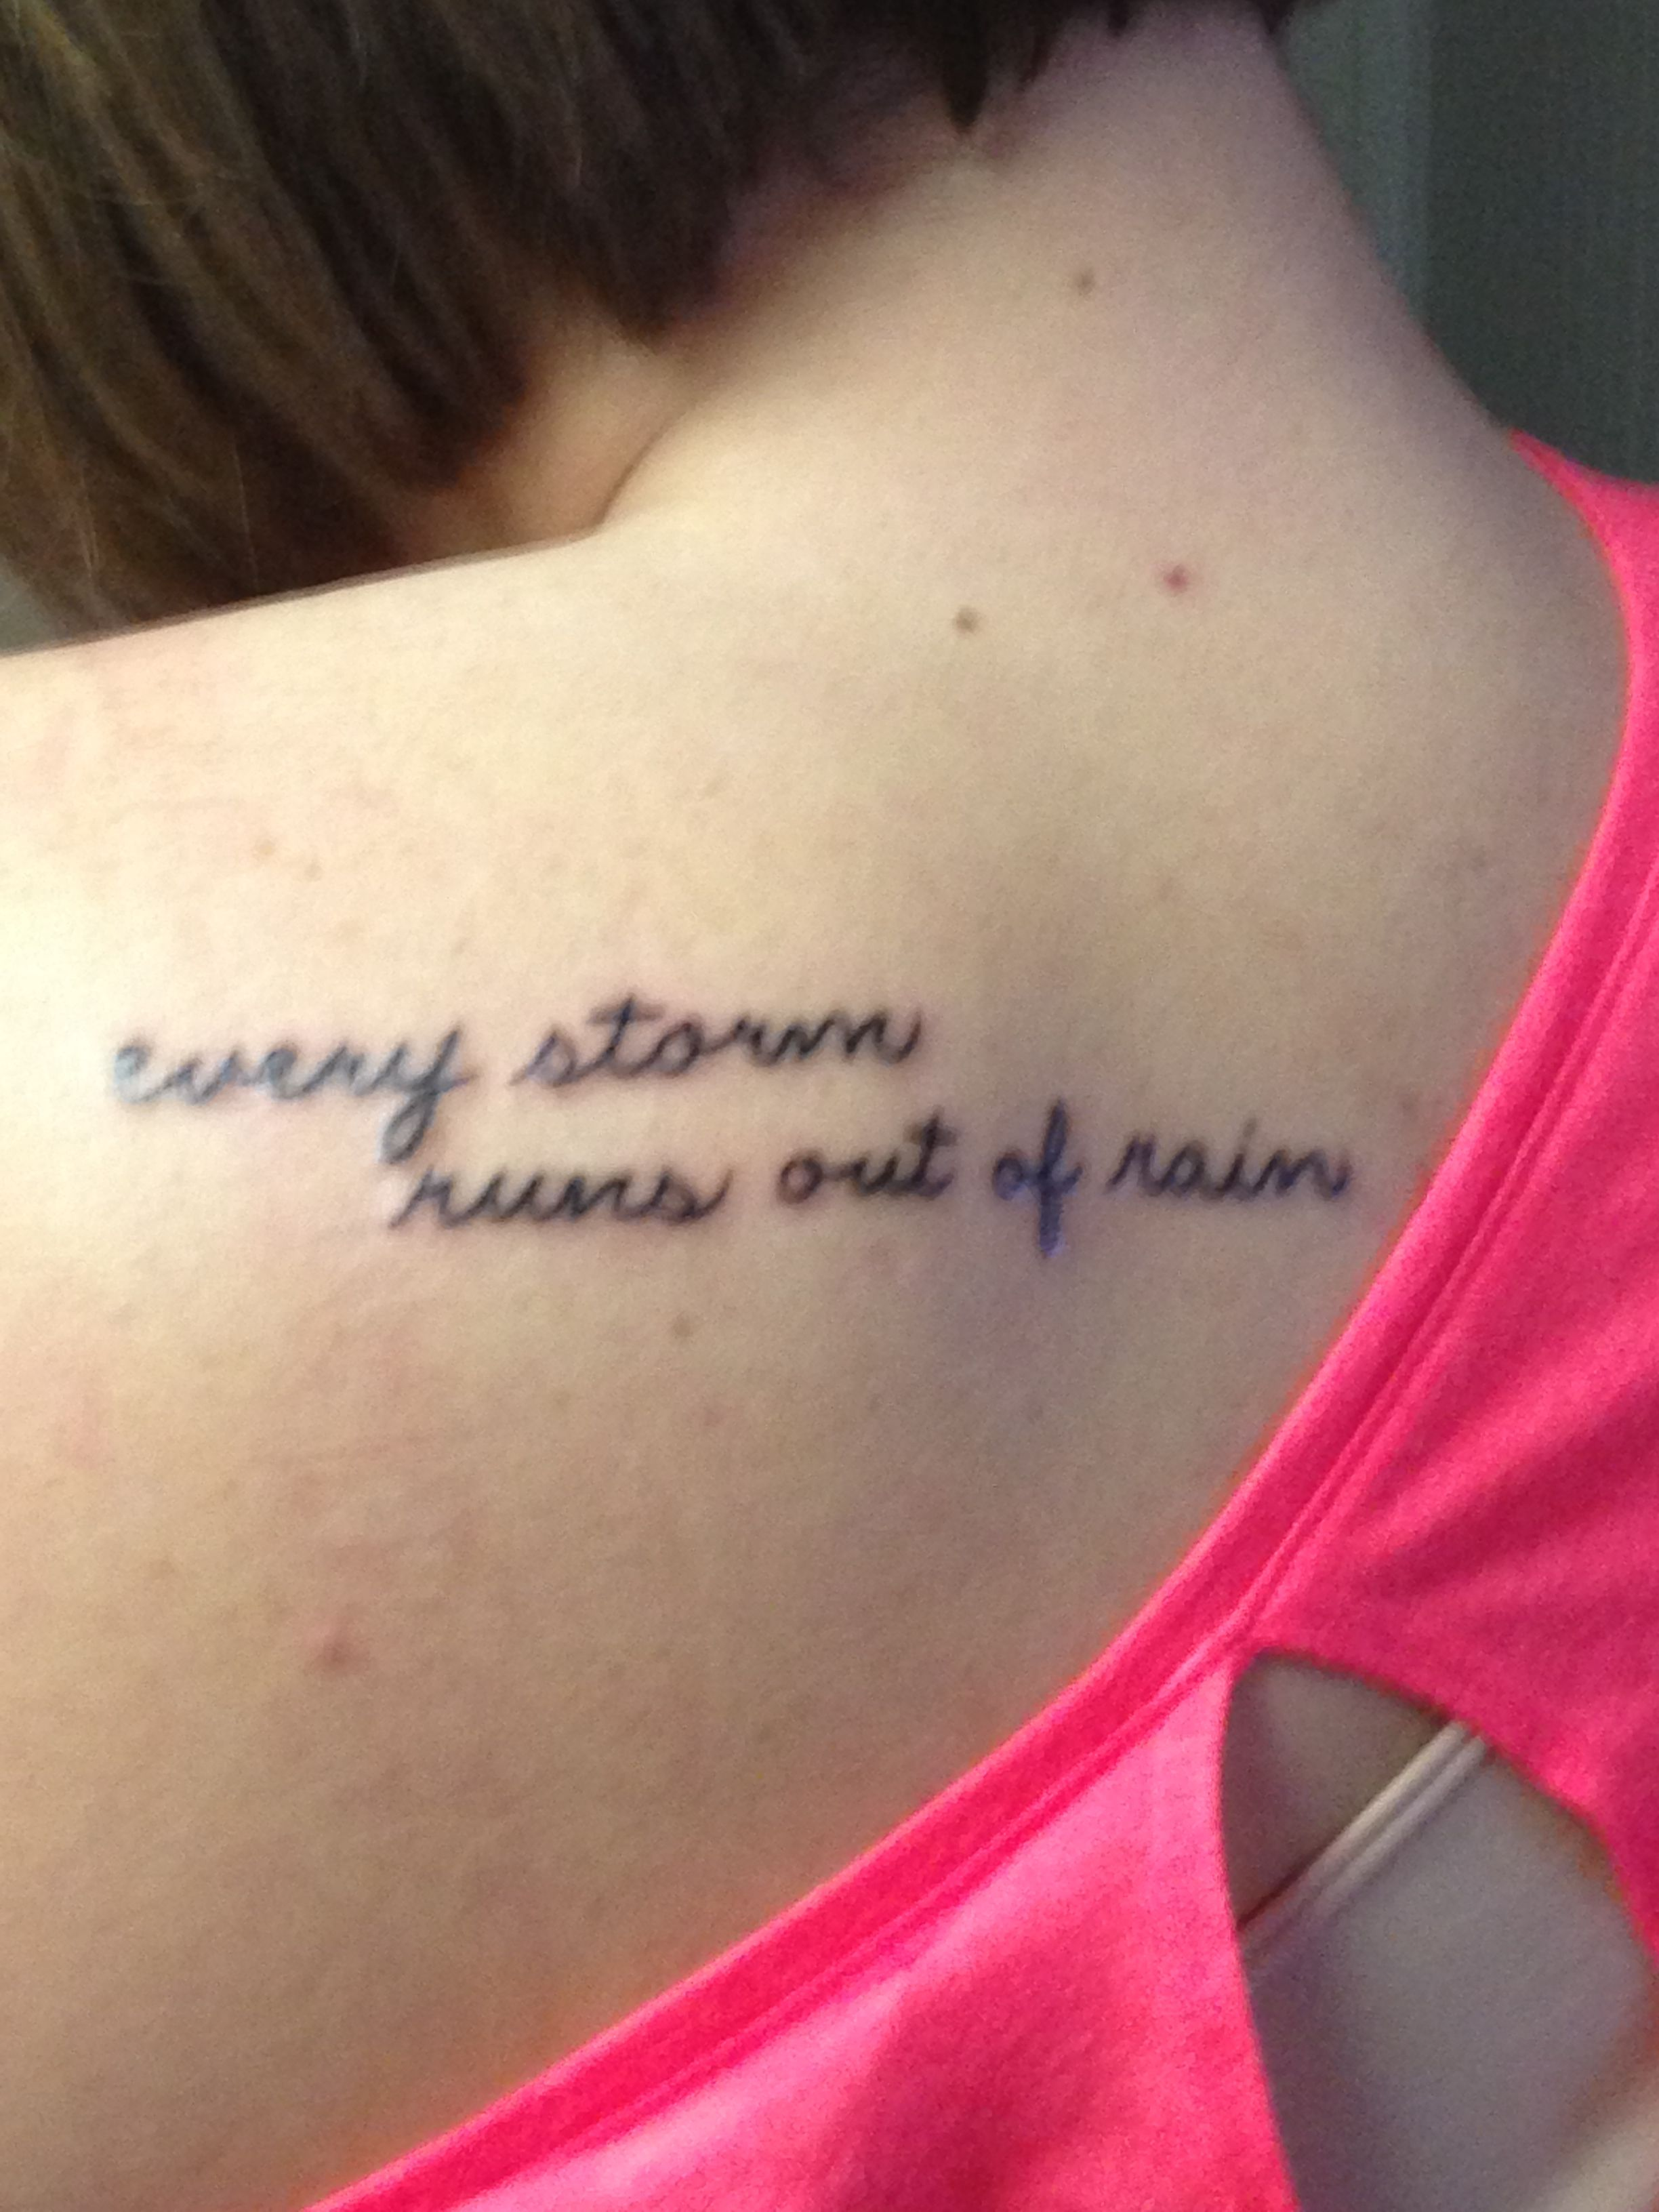 Shoulder blade tattoo. Every storm runs out of rain ...